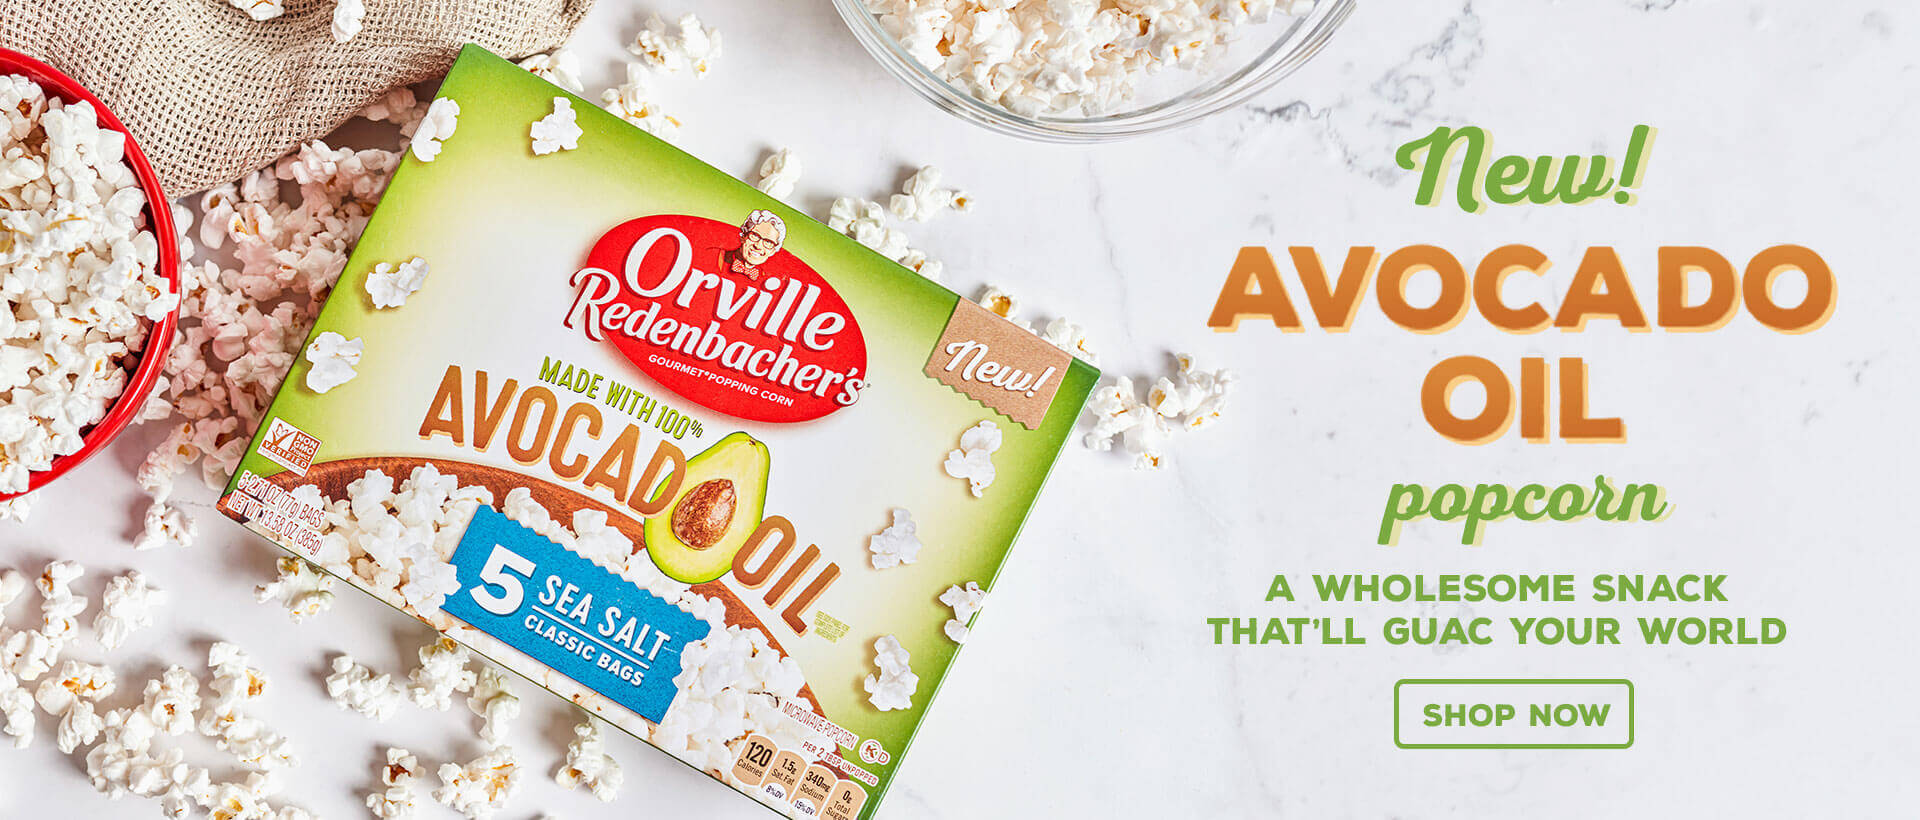 New! Avocado Oil Popcorn. A Wholesome Snack That'll Guac Your World. Shop Now.